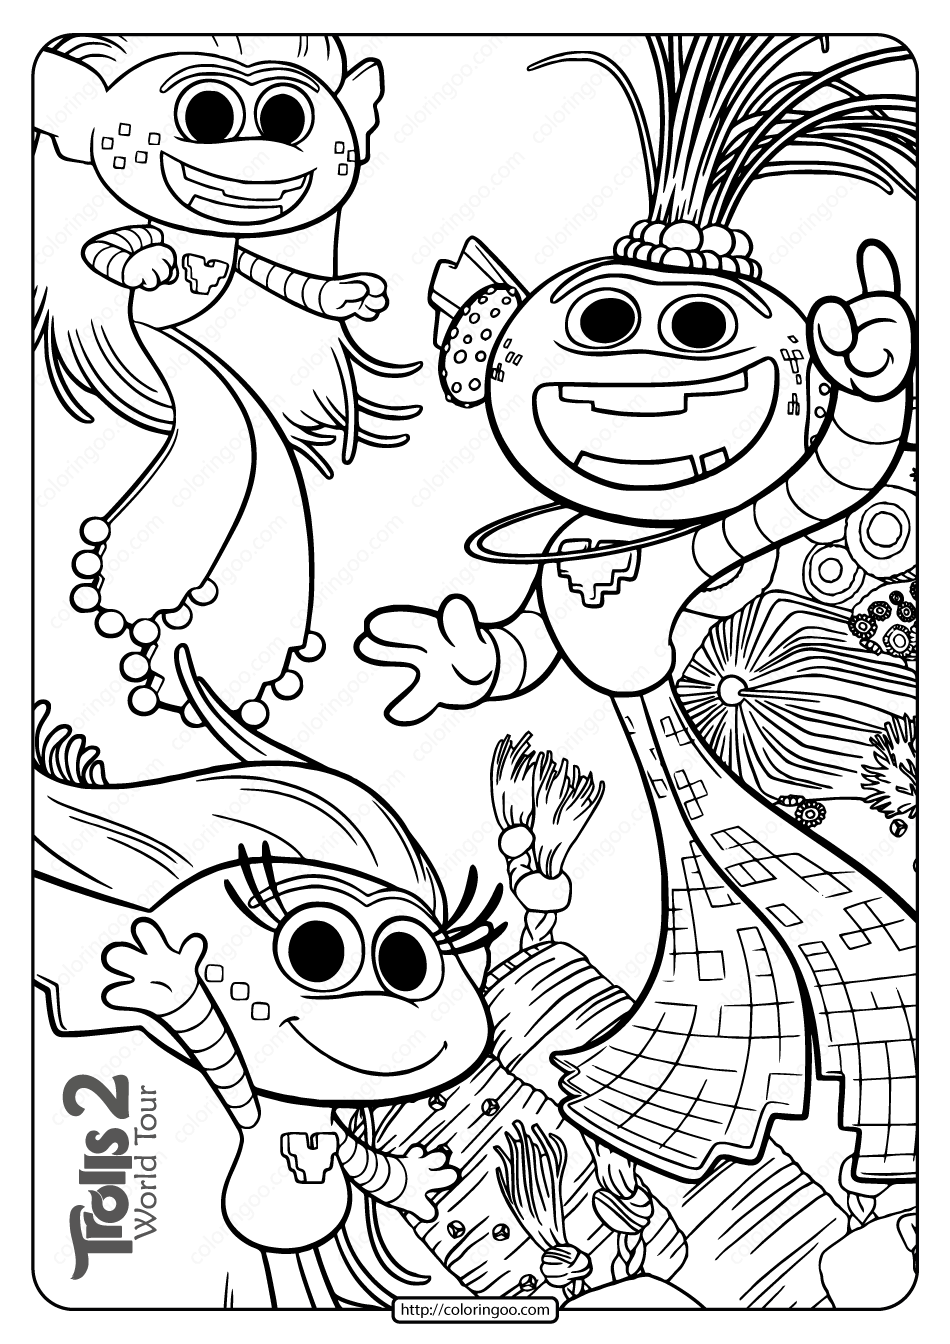 coloring pages printables free printable goofy coloring pages for kids coloring printables pages